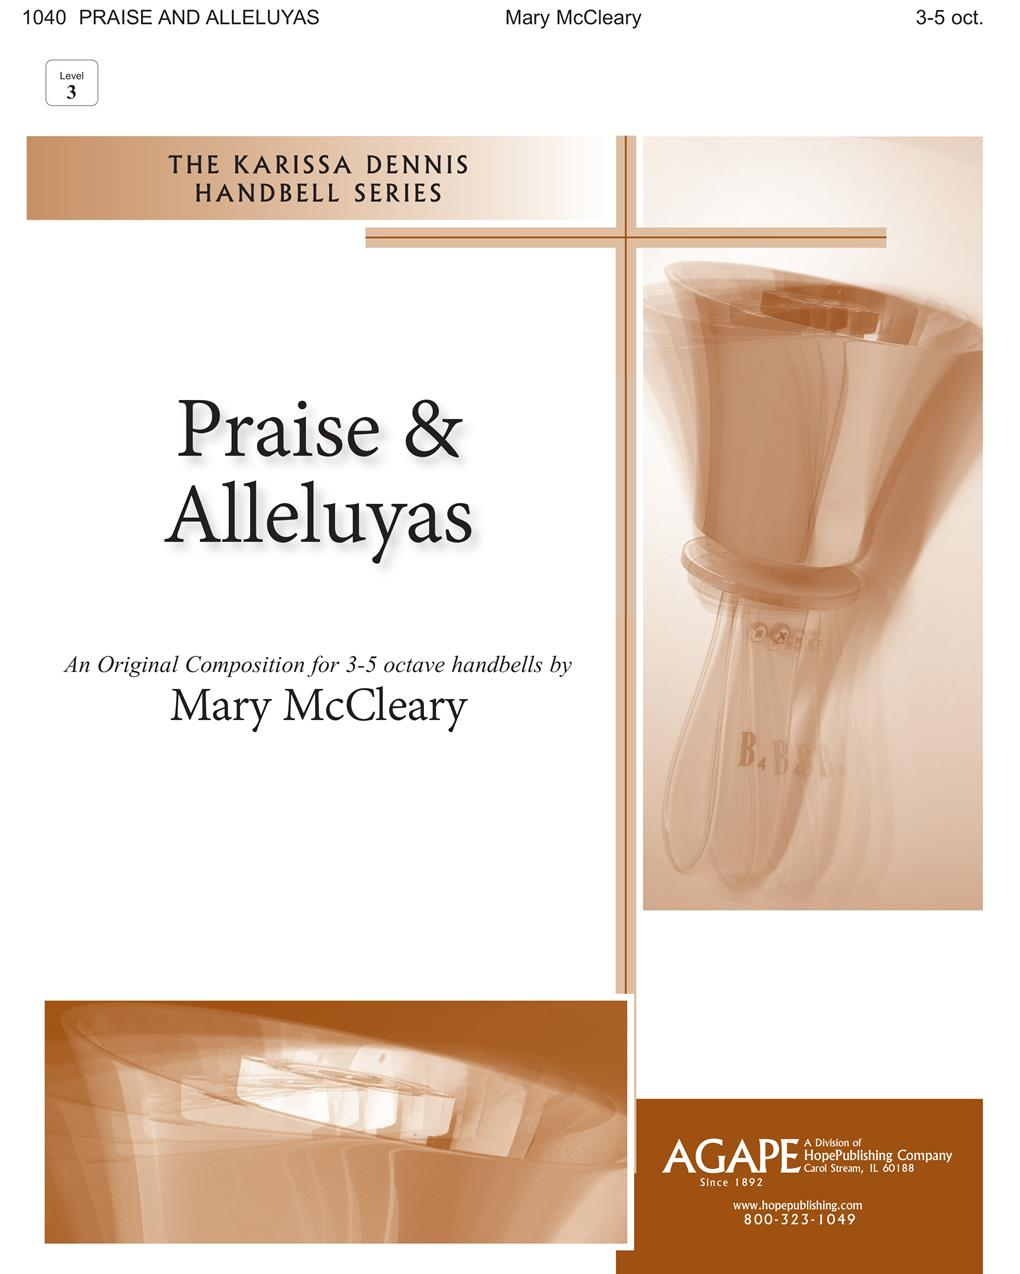 Praise and Alleluyas - 3-5 Oct. Cover Image